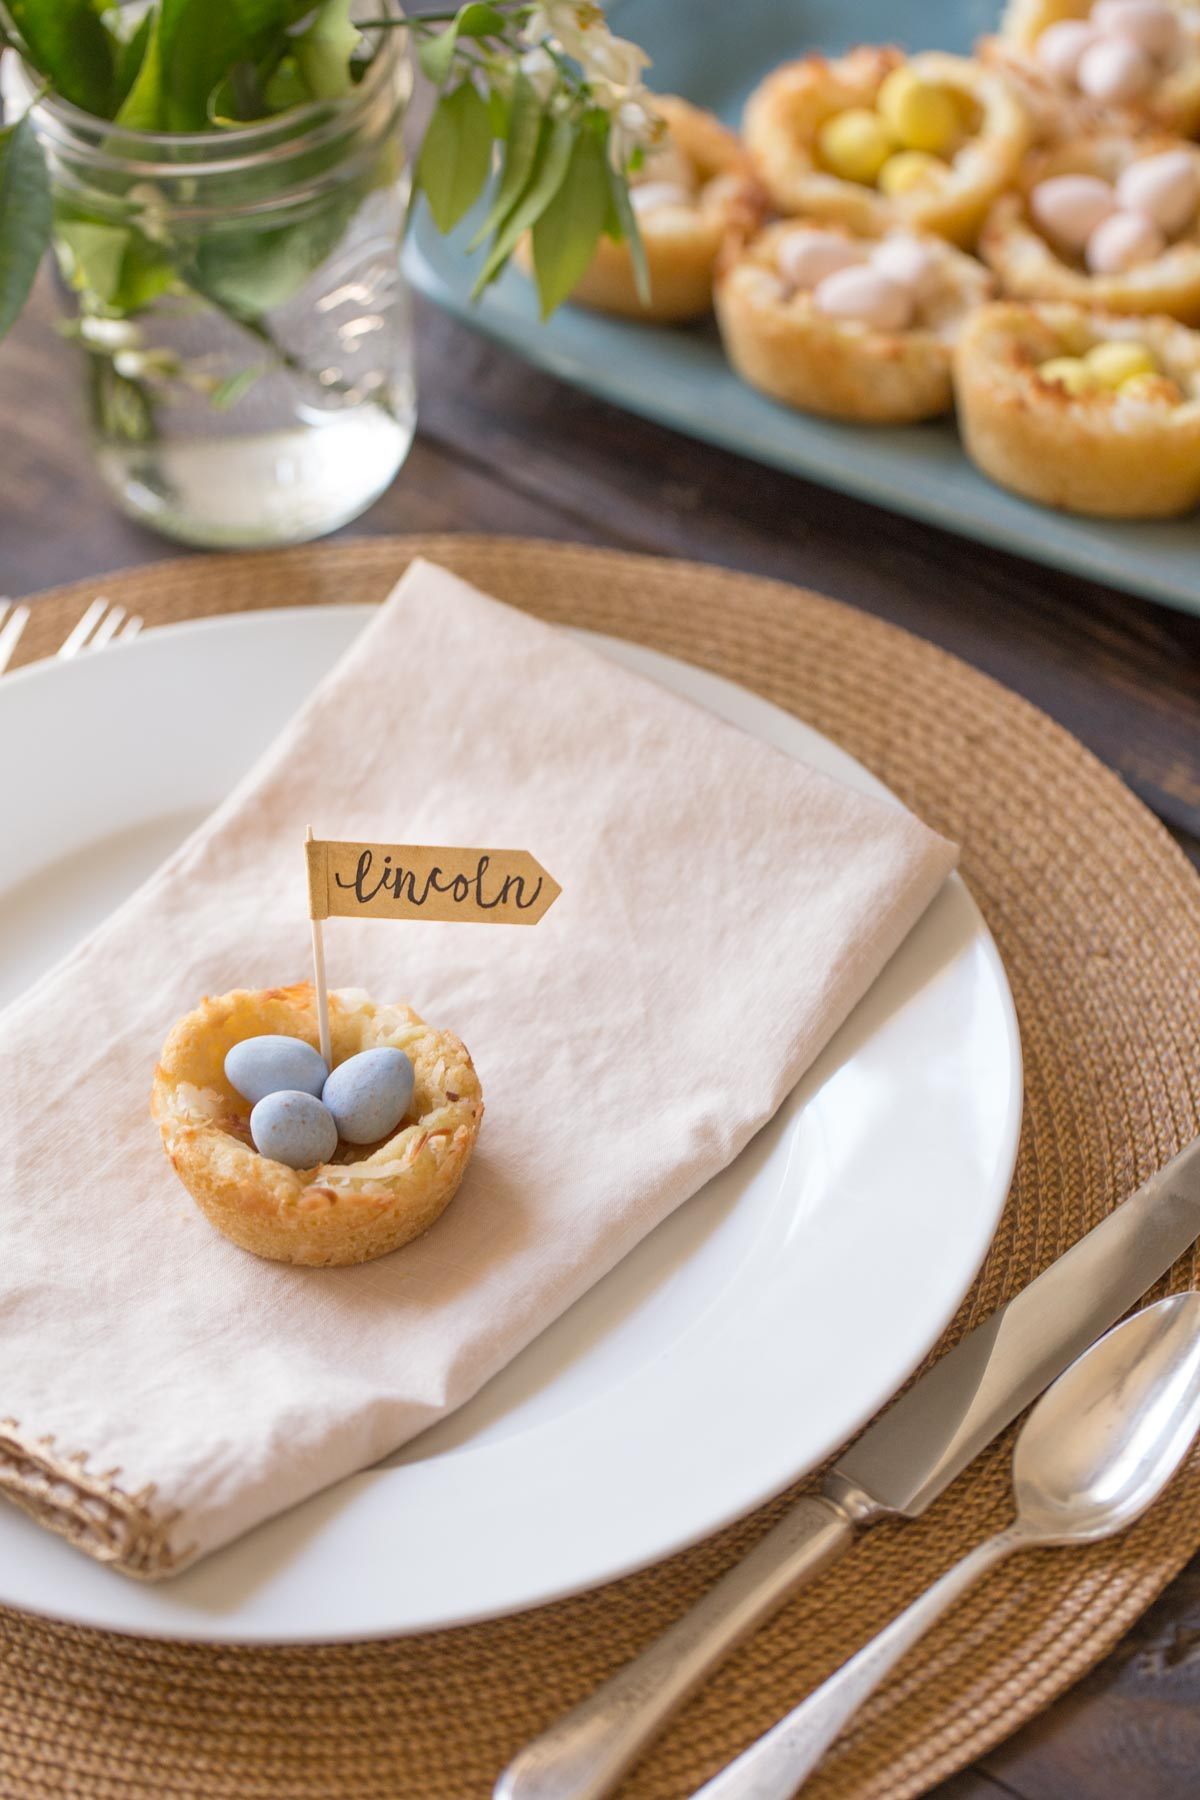 Sugar Cookie Easter Egg Nest with a name flag, sitting on top of a folded napkin on a place setting.